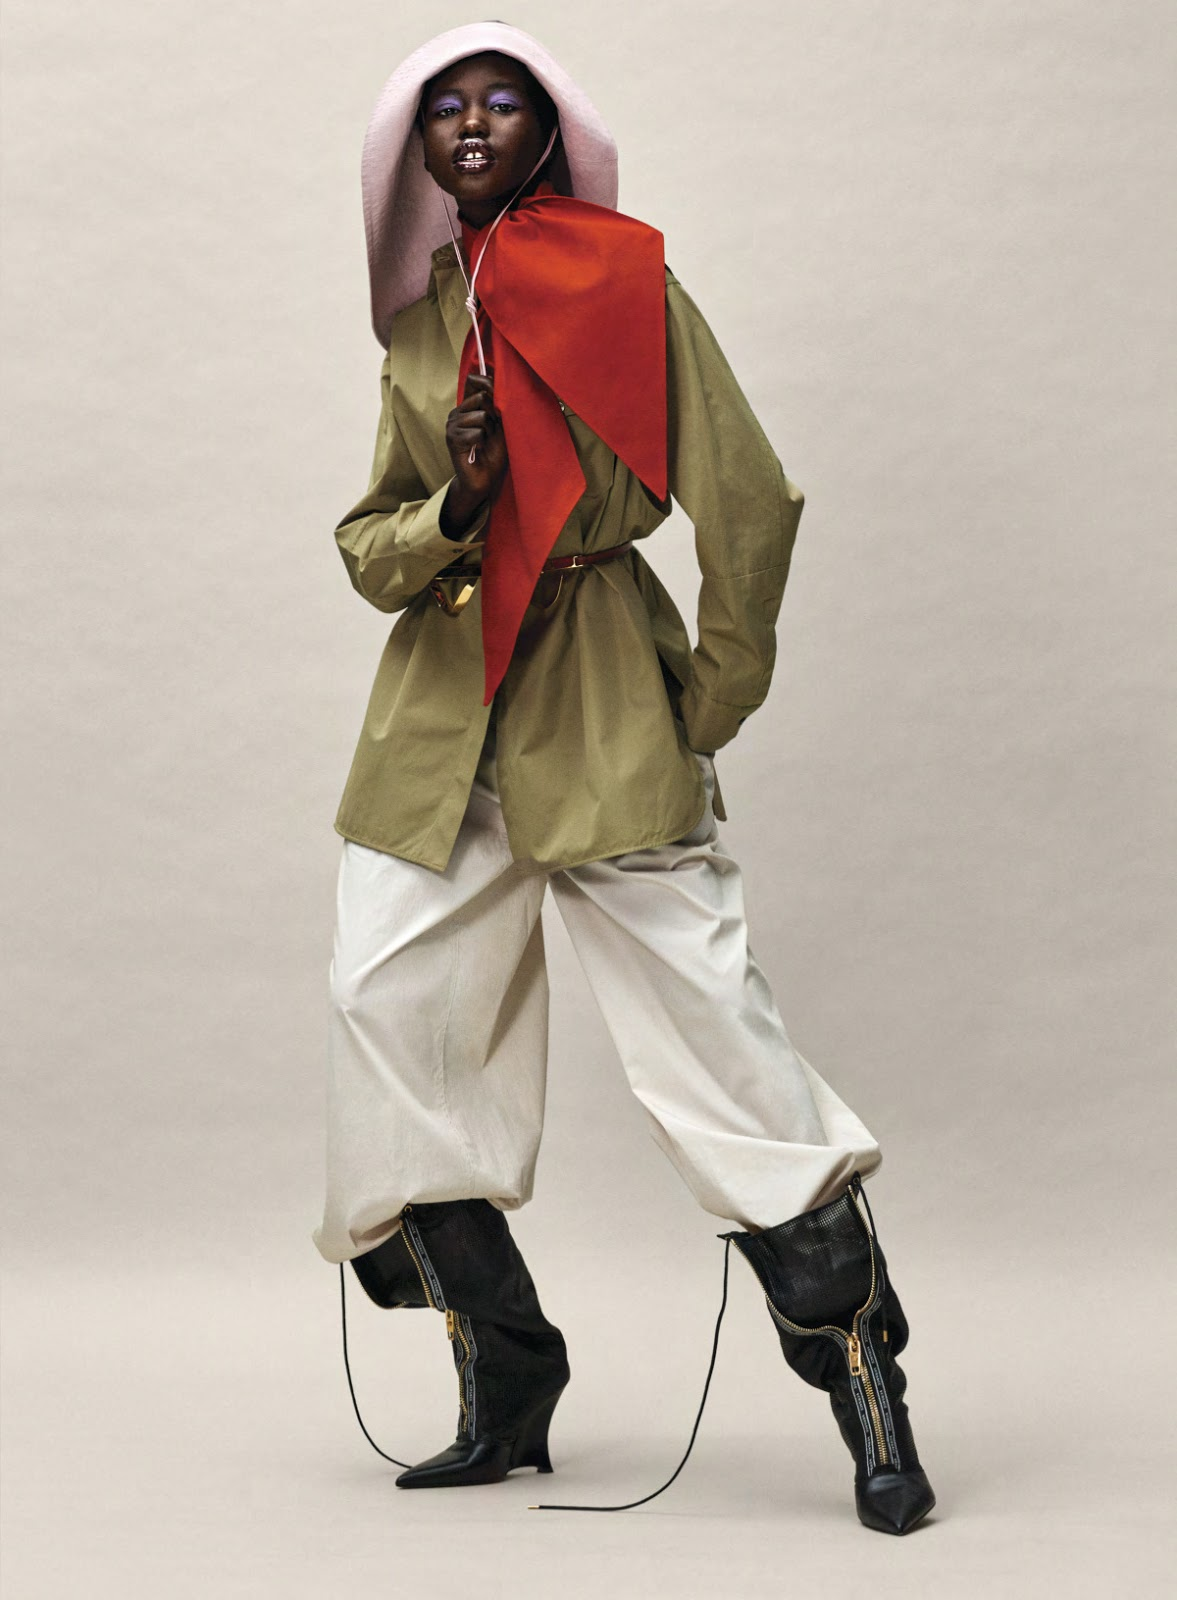 Adut Akech by Josh Olins for Vogue US January 2019 (8).jpg